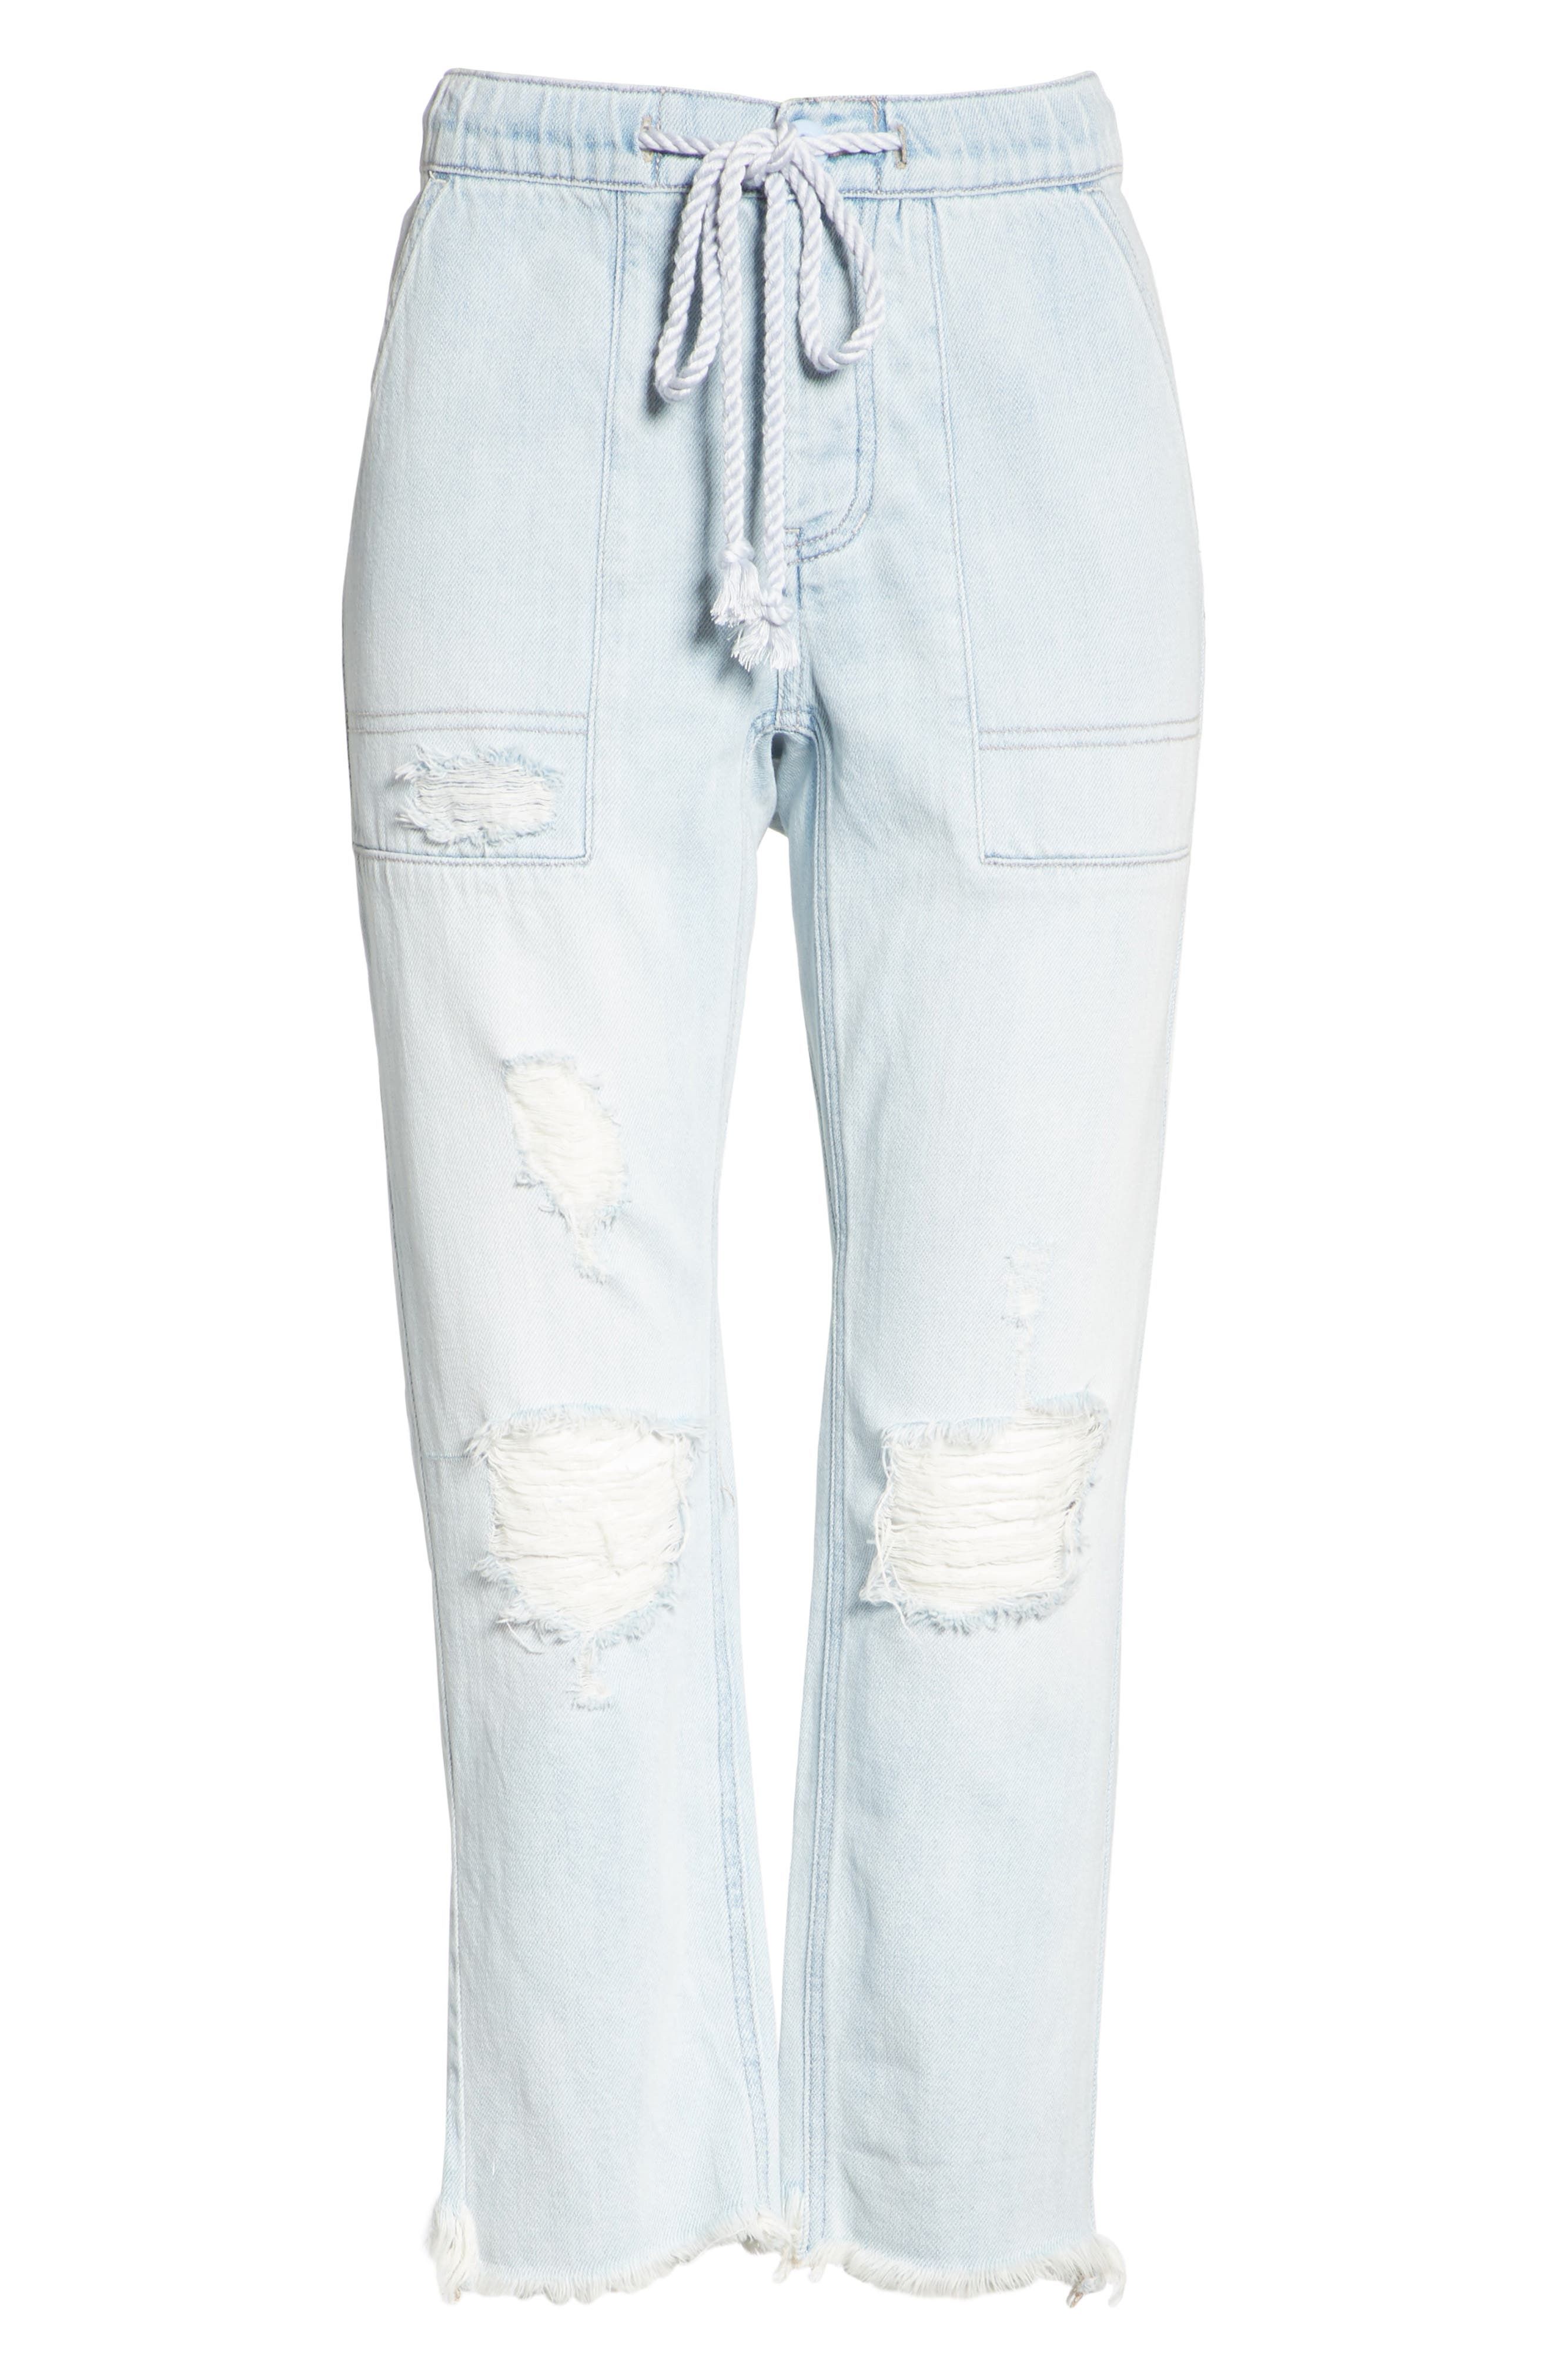 Northern Sky Ripped Crop Jeans,                             Alternate thumbnail 6, color,